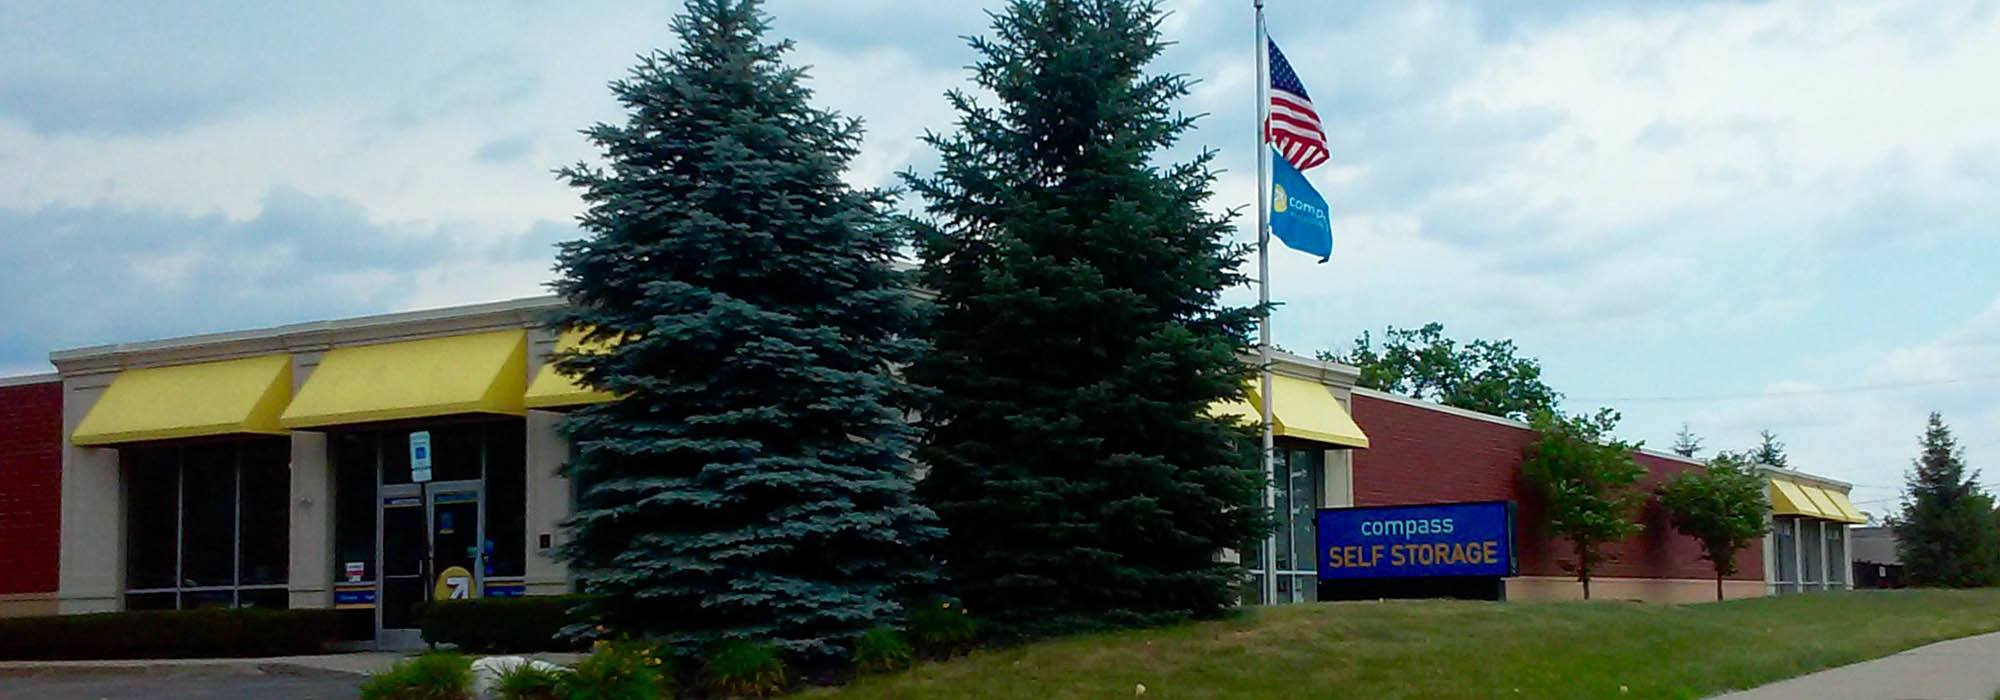 Self storage in Novi MI